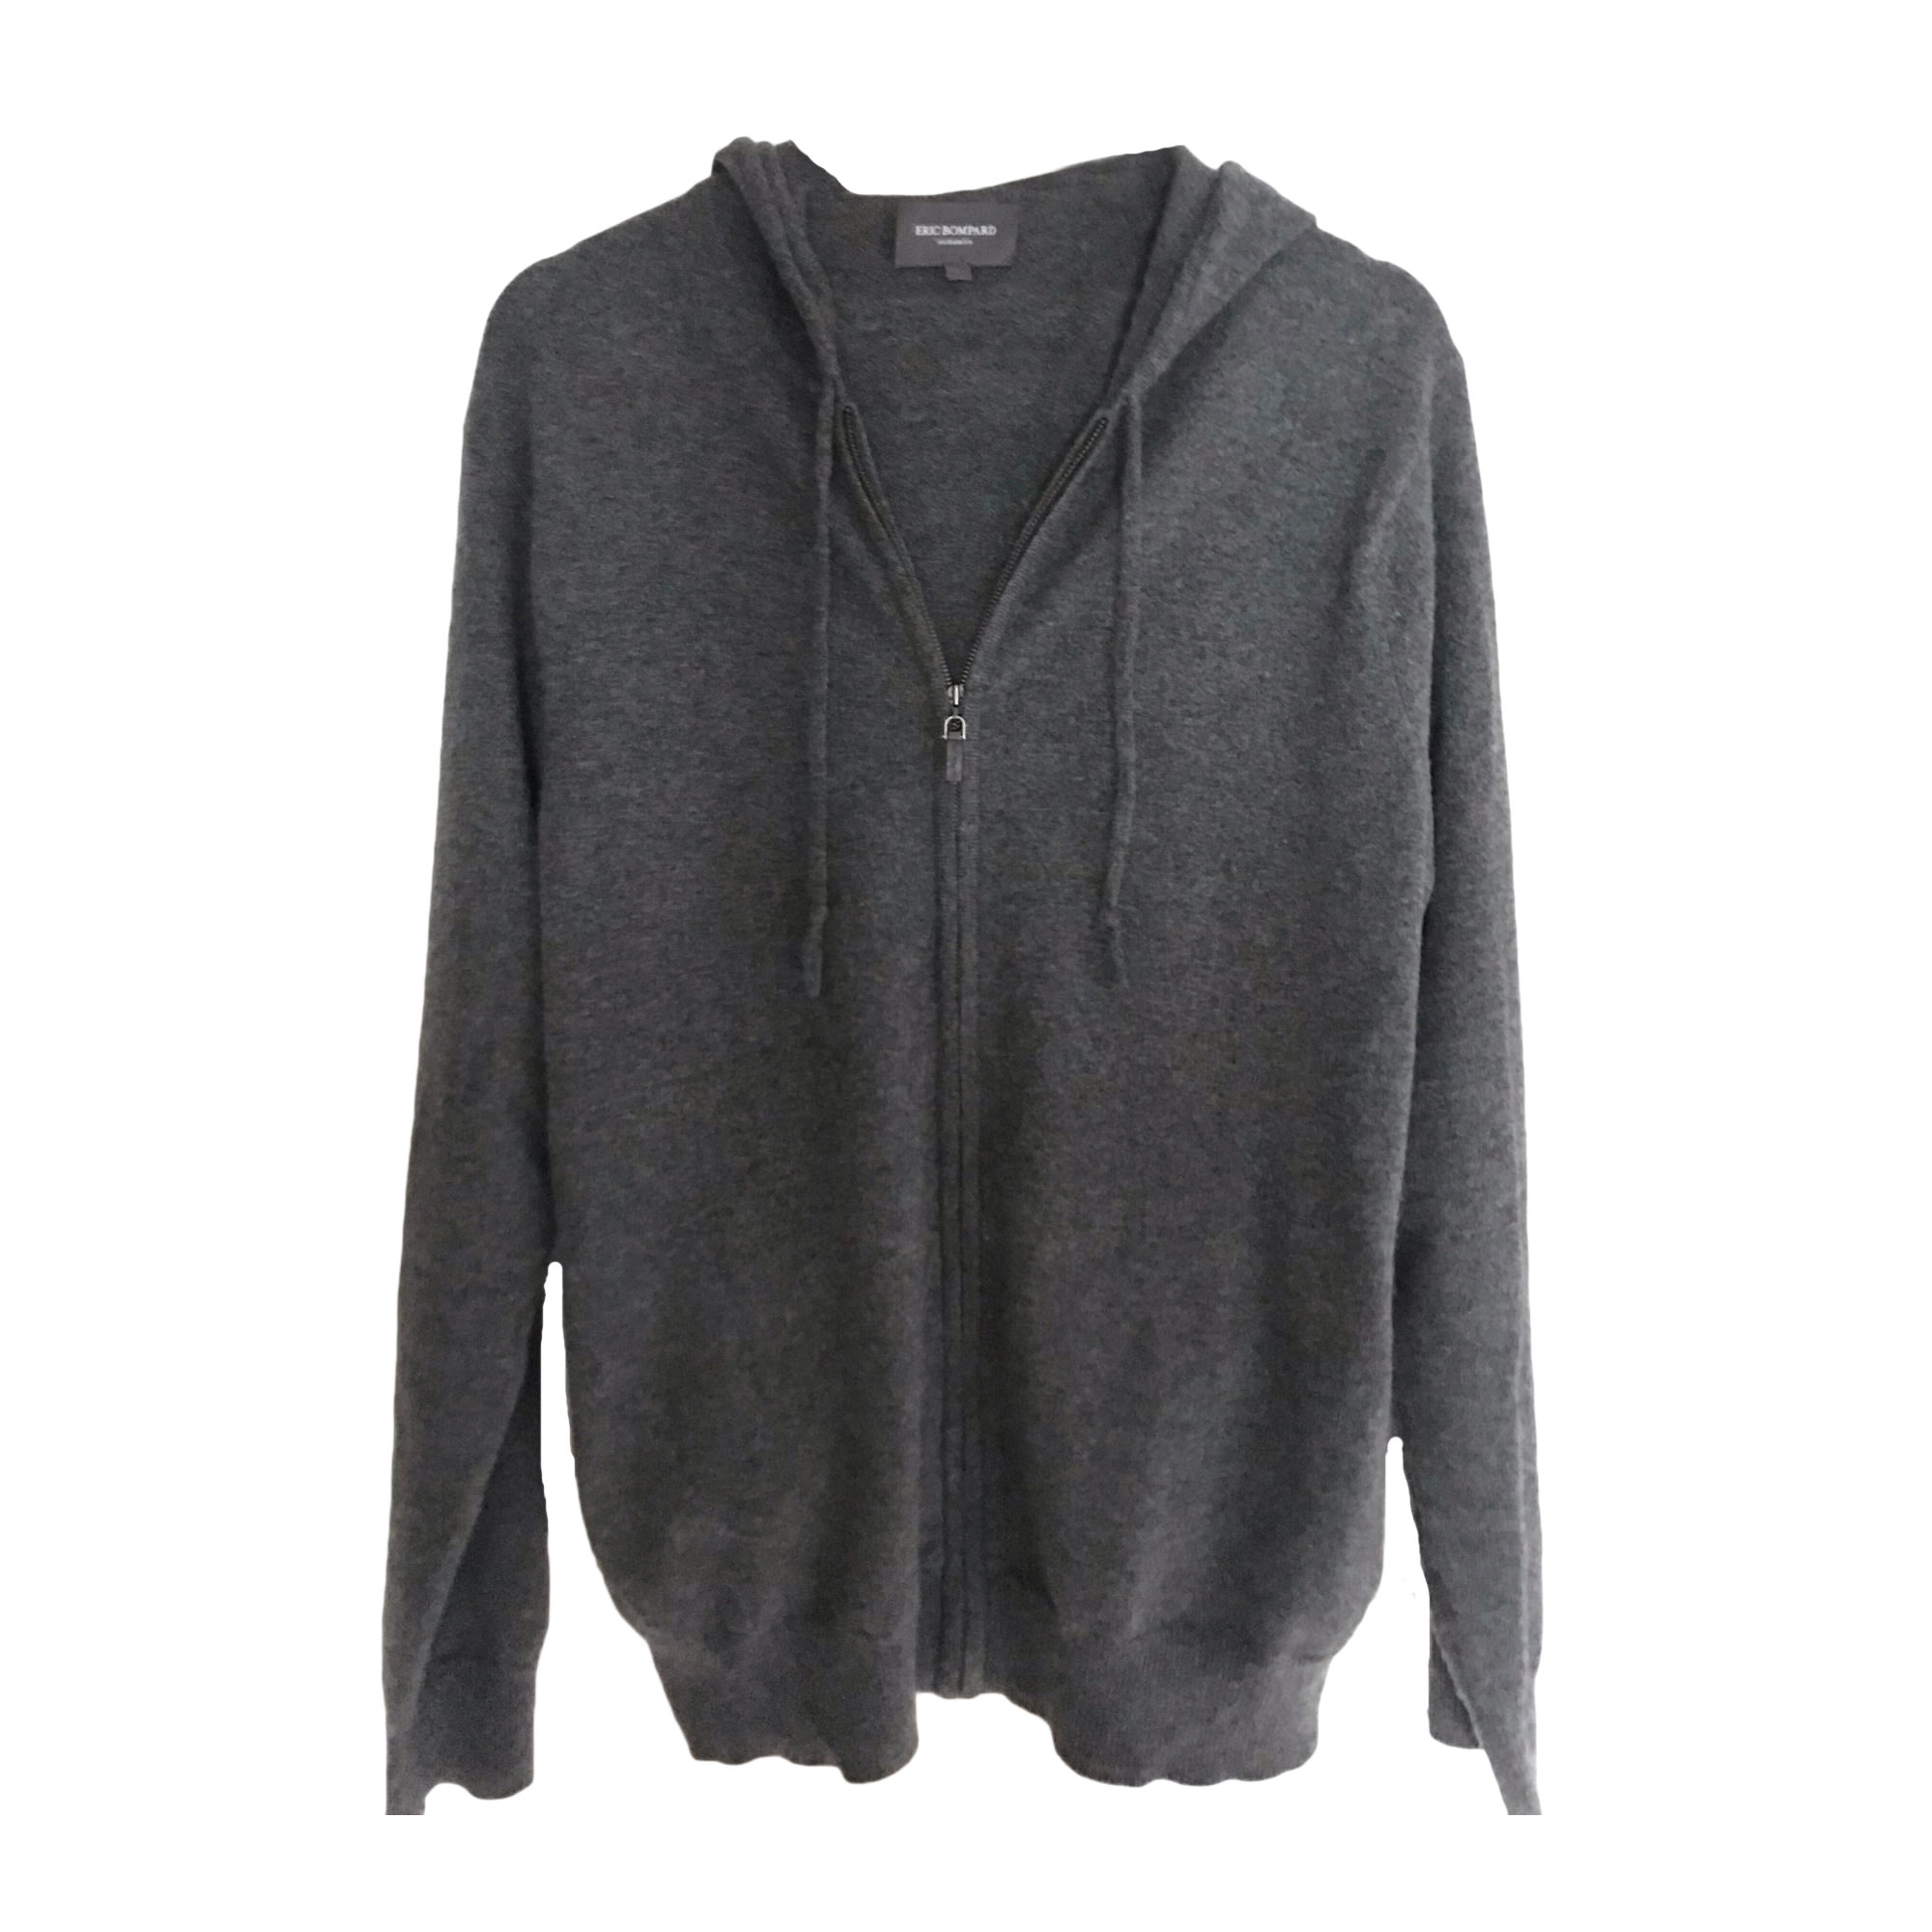 Vest, Cardigan ERIC BOMPARD Gray, charcoal